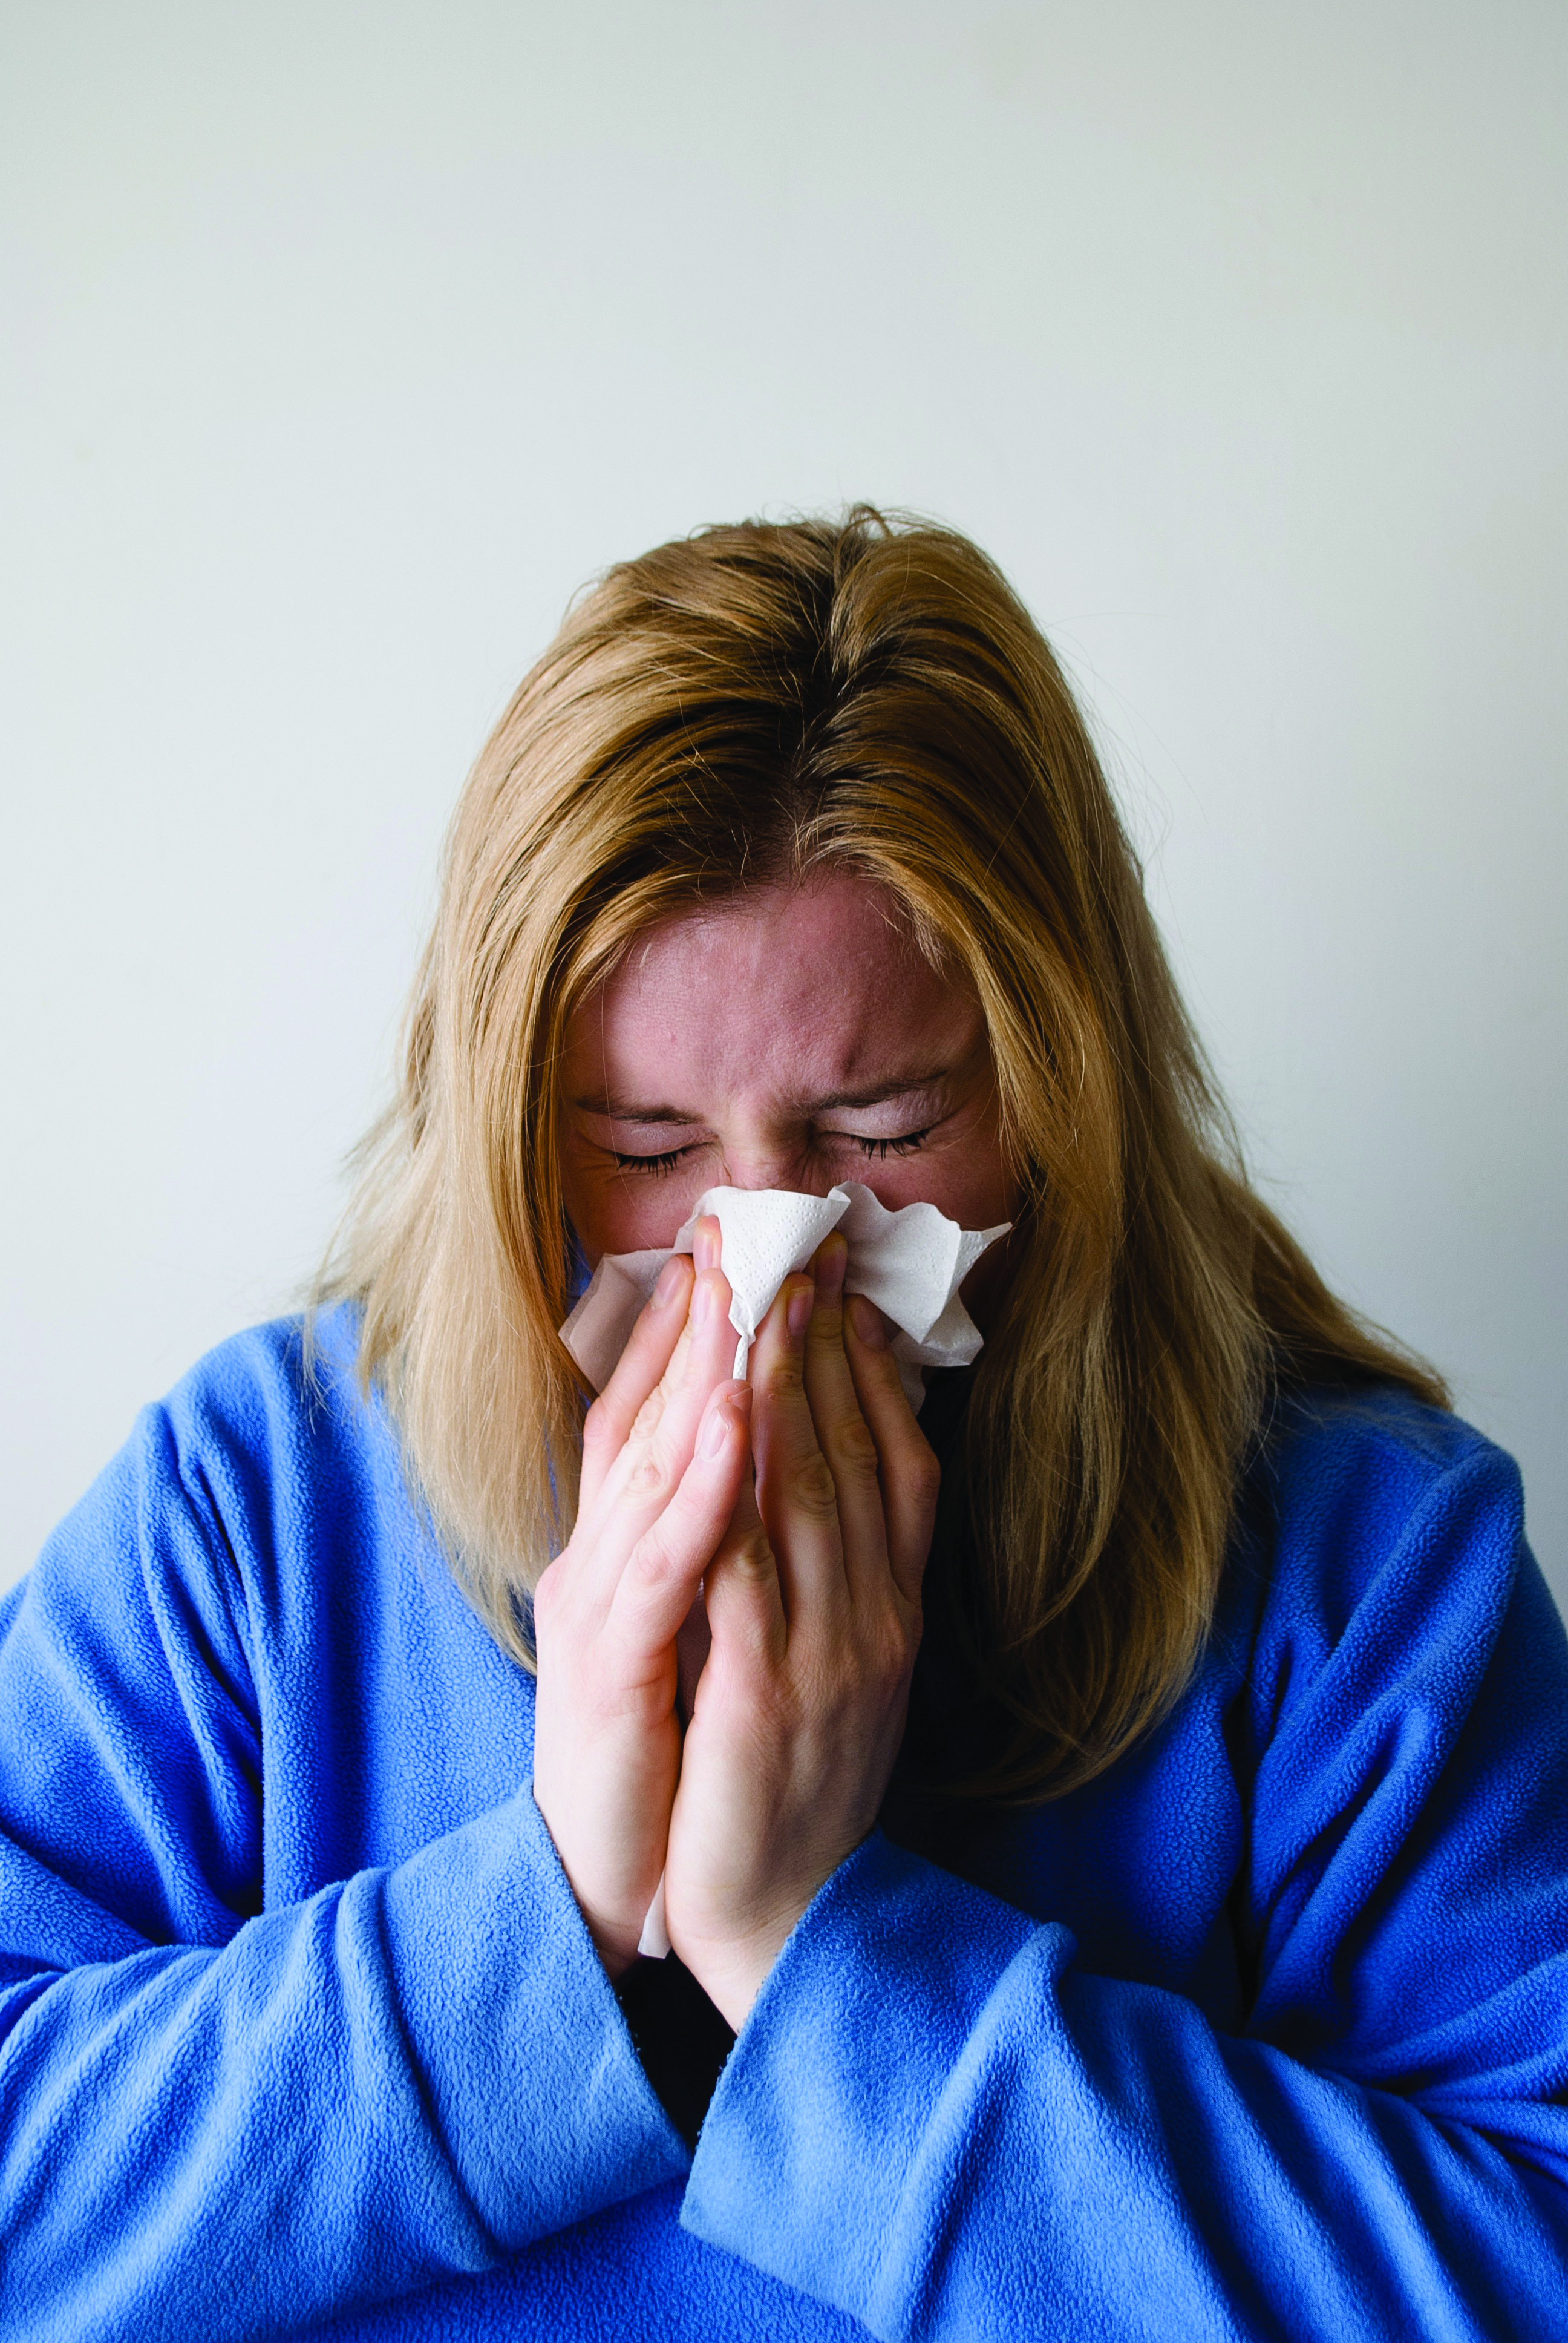 What can you do to help avoid the flu? By Dr. Veronique LaRocco